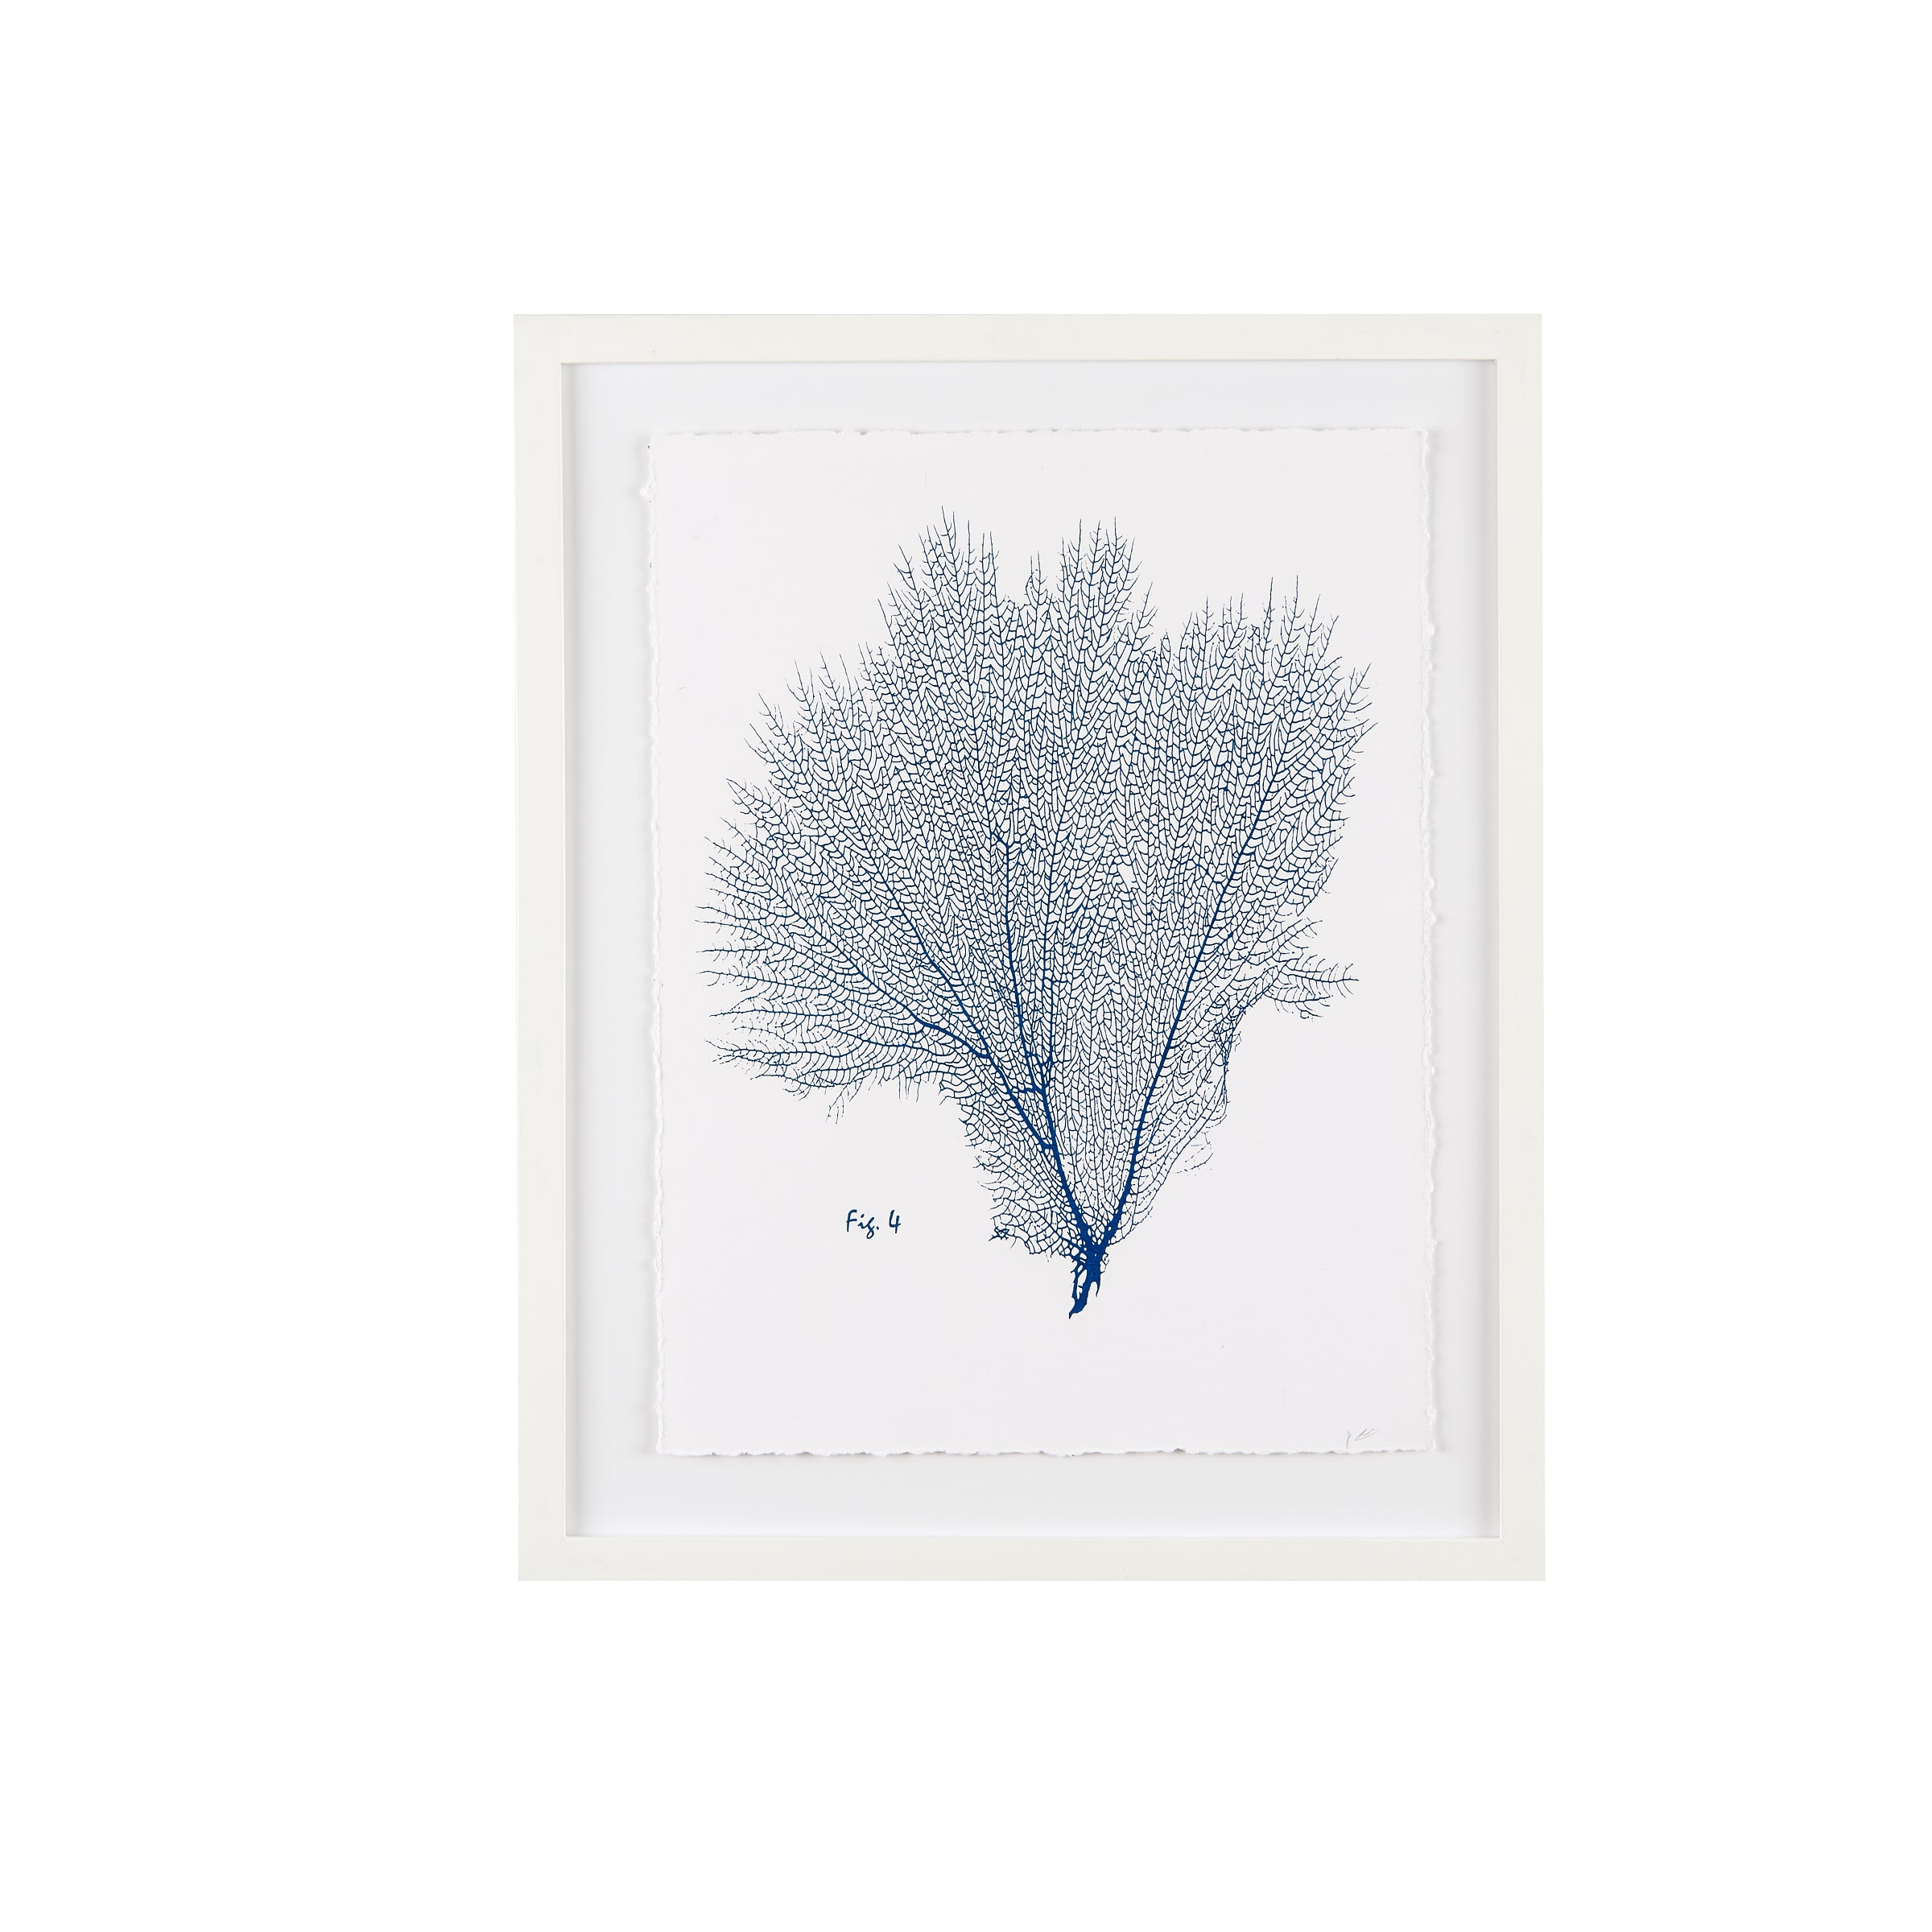 Sea Fan Fig. 4 Blueprint